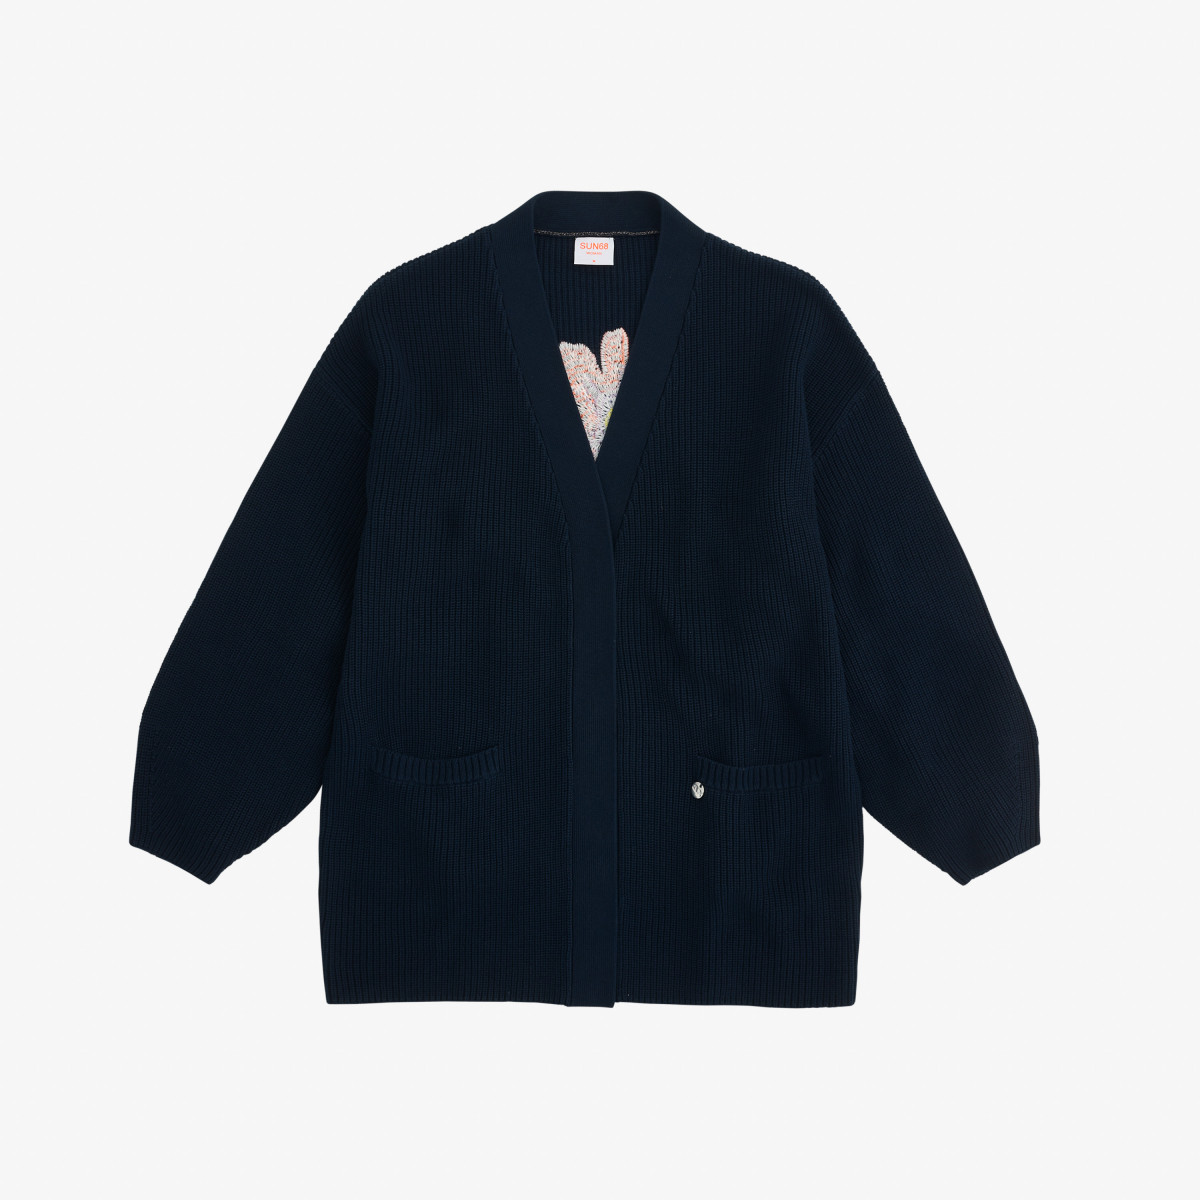 CARDIGAN TRICOT EMBRODERY NAVY BLUE